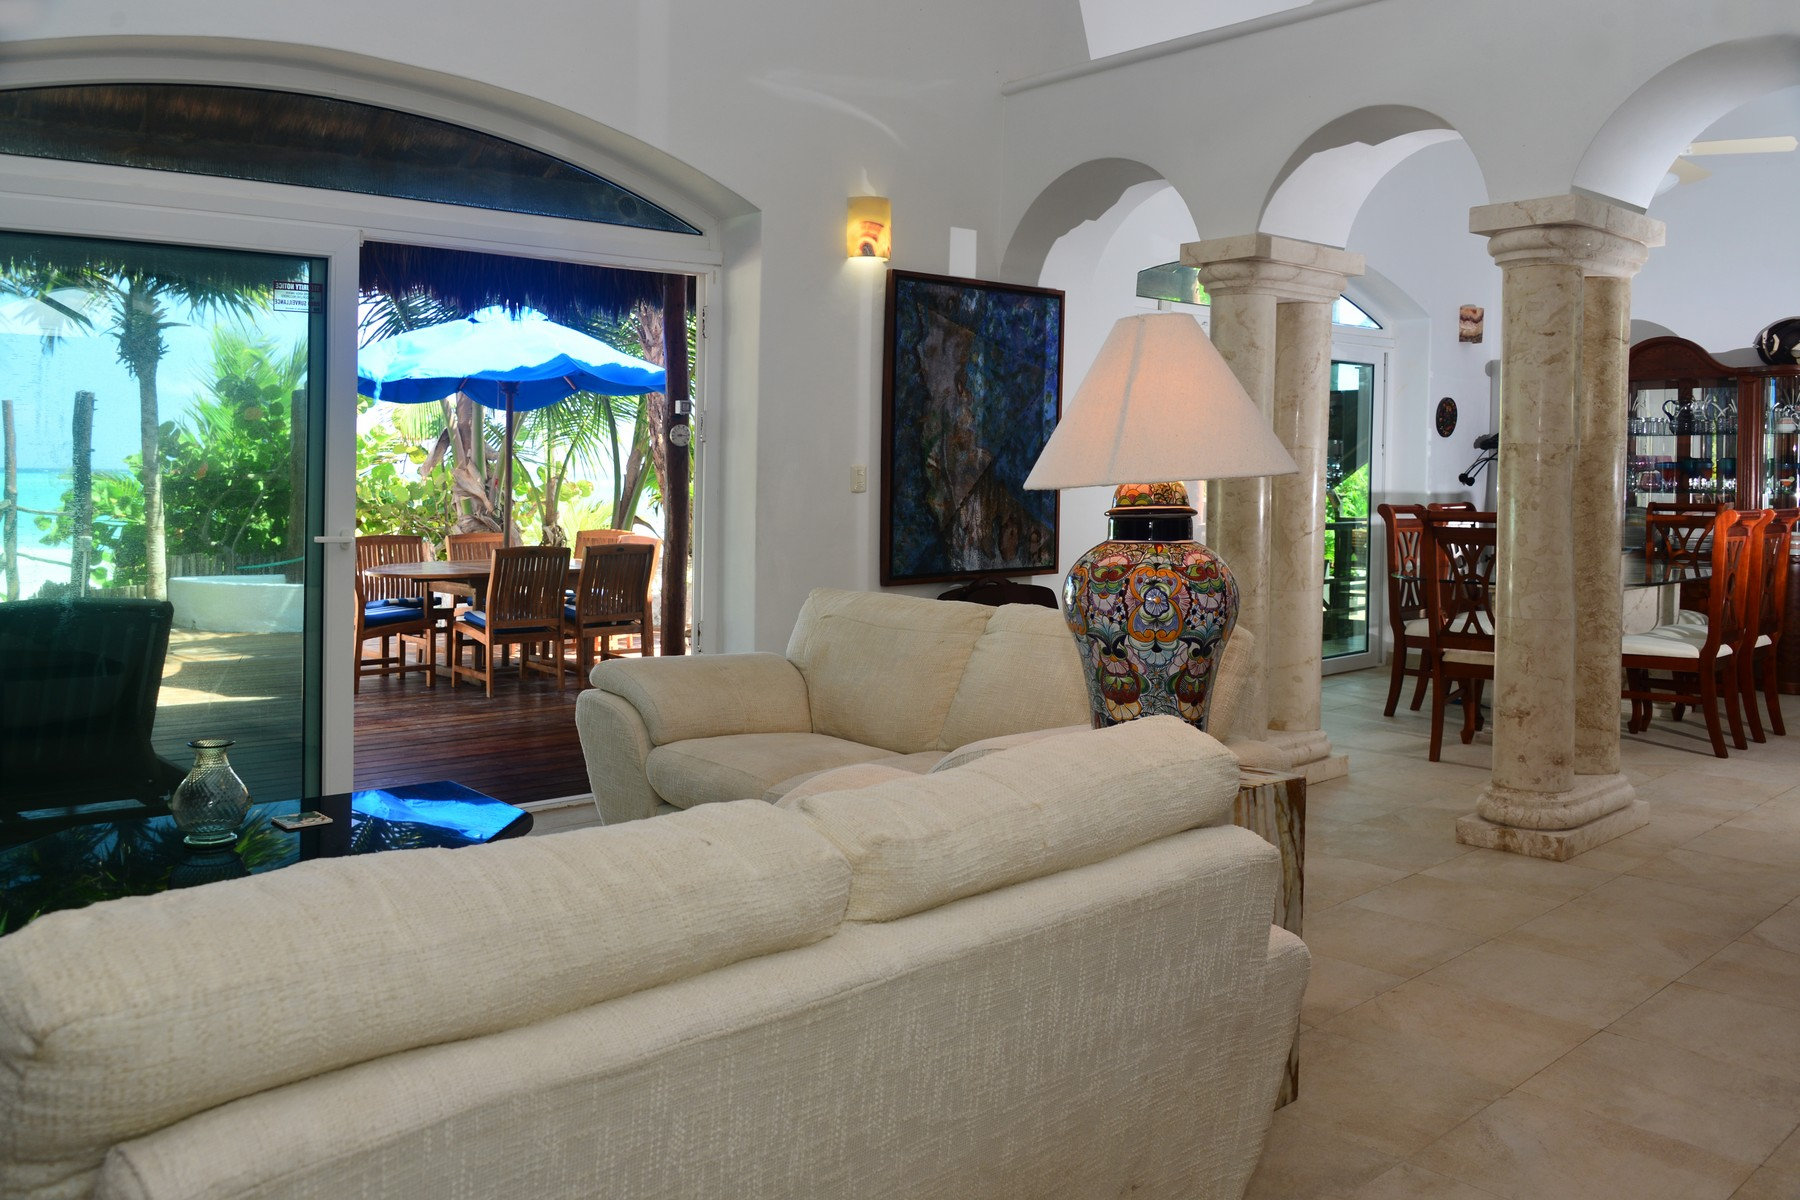 Additional photo for property listing at VILLA DESTINY BEACHFRONT HOME Beachfront Home Camino Tulum-Boca Paila Tulum, Quintana Roo 77087 Mexico